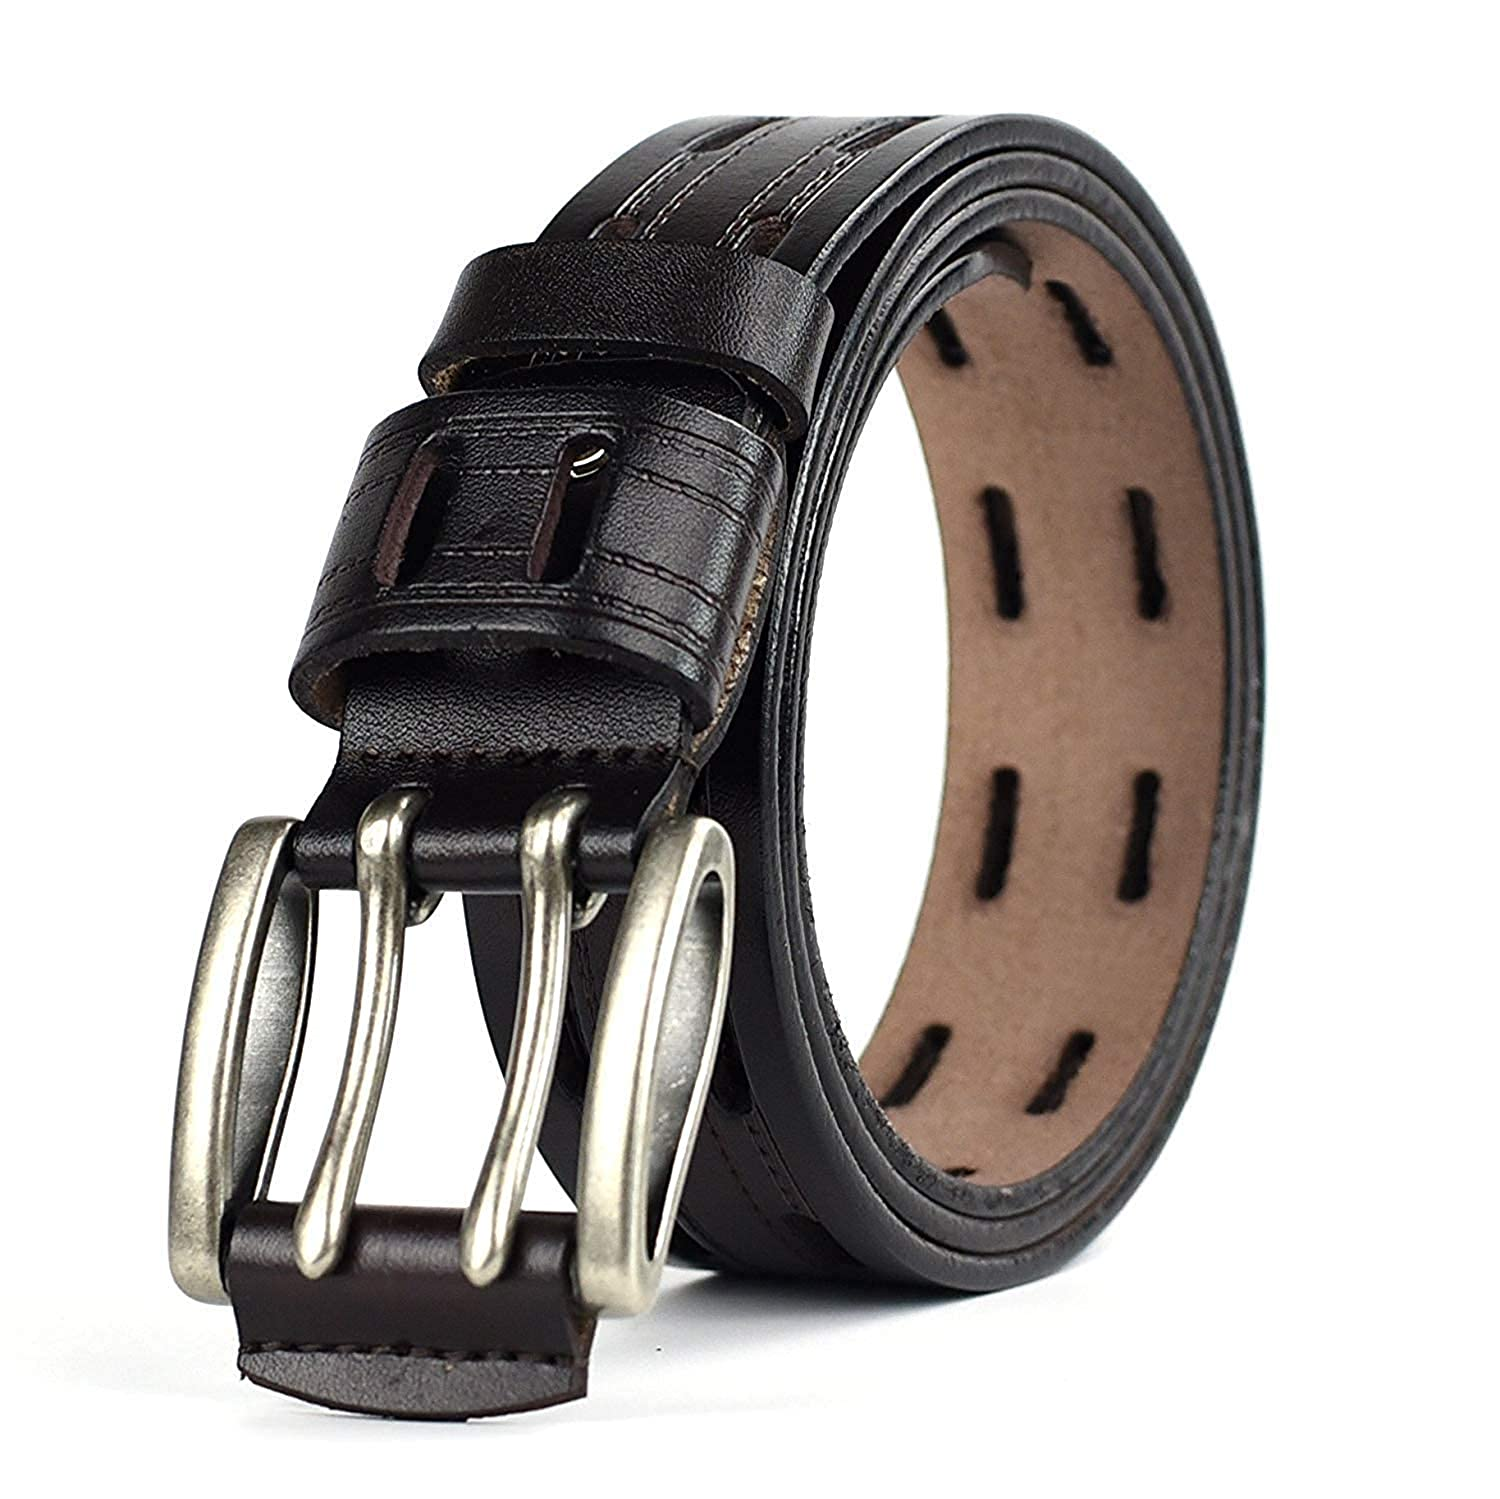 LVLUOYE Mens belt Pin Buckle Leather Leisure Jeans Waist